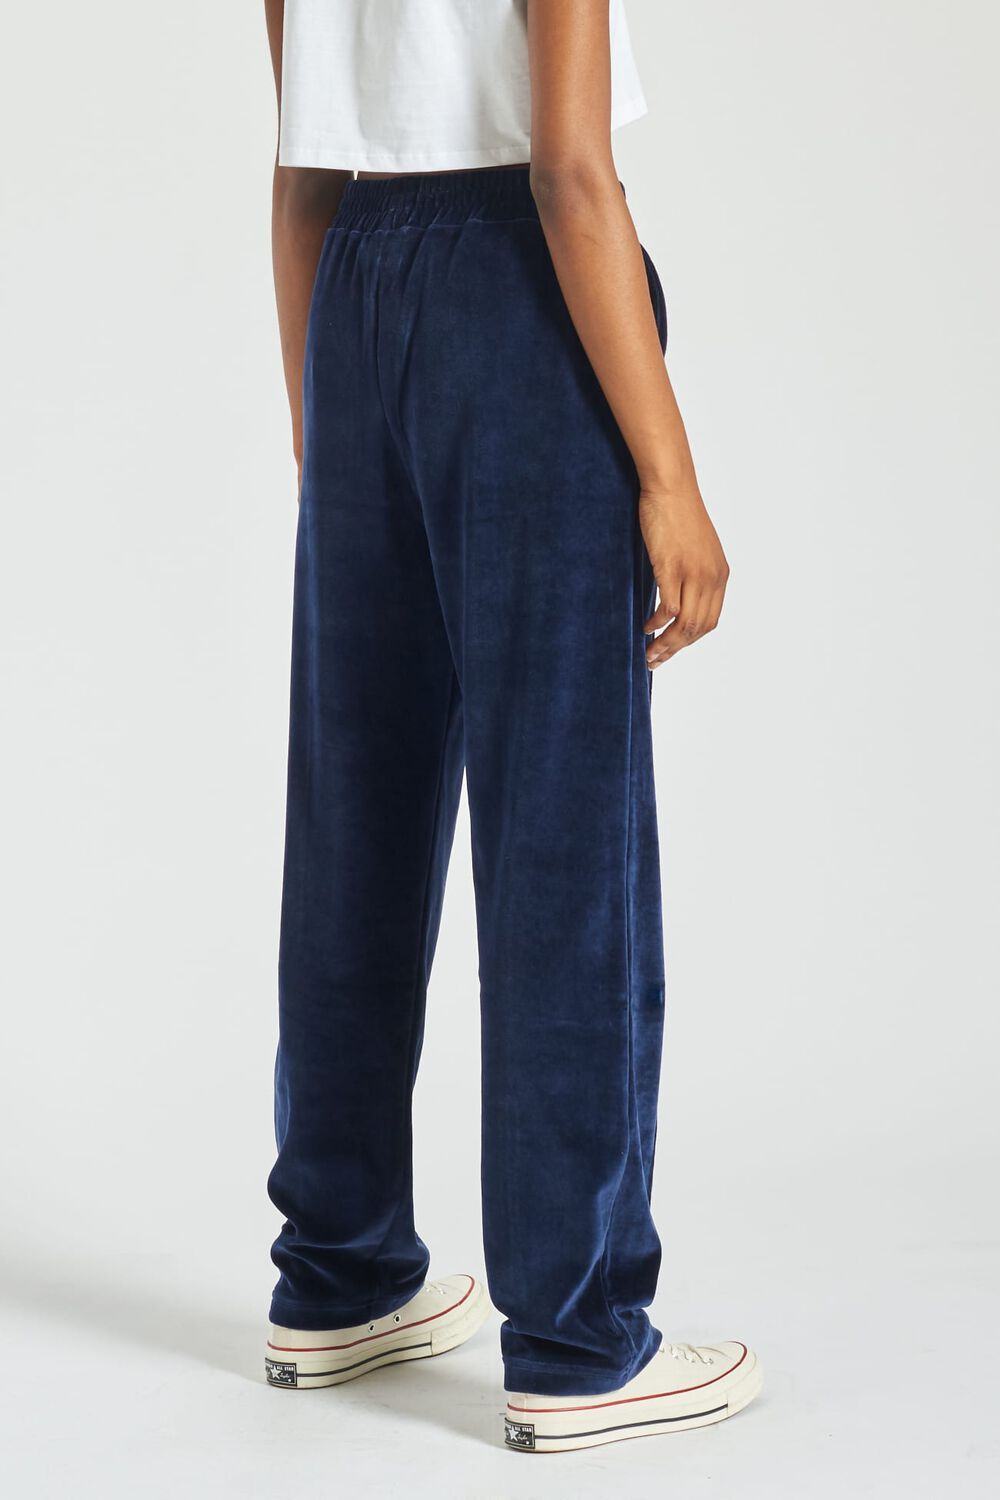 Angels Patch Velour Joggers Navy